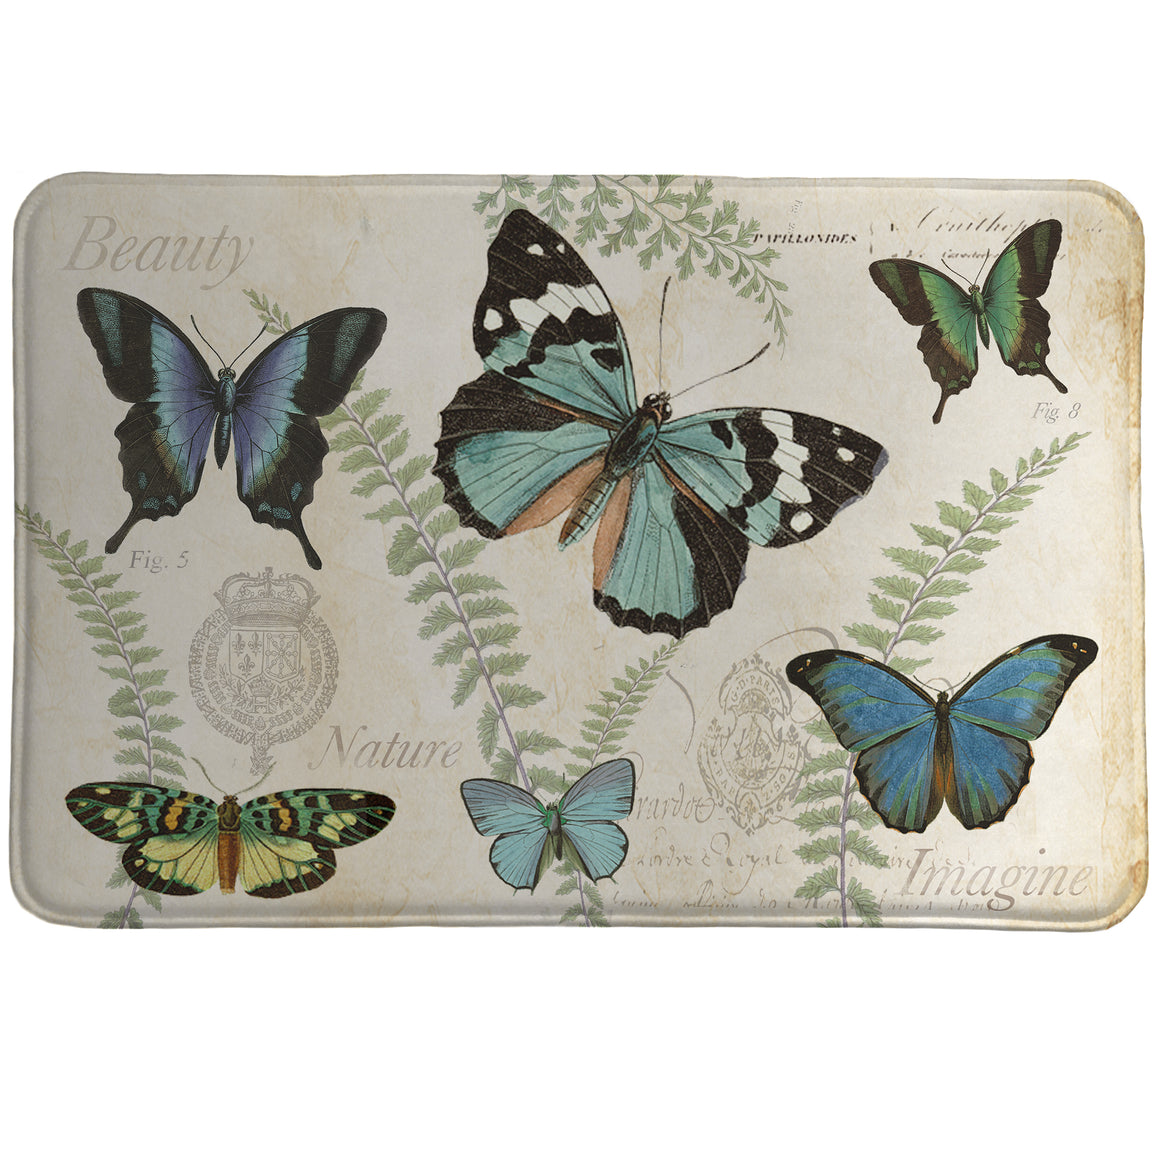 Flutters and Ferns is decorated with a flurry of blue-winged butterflies, on a background accented with greenery.